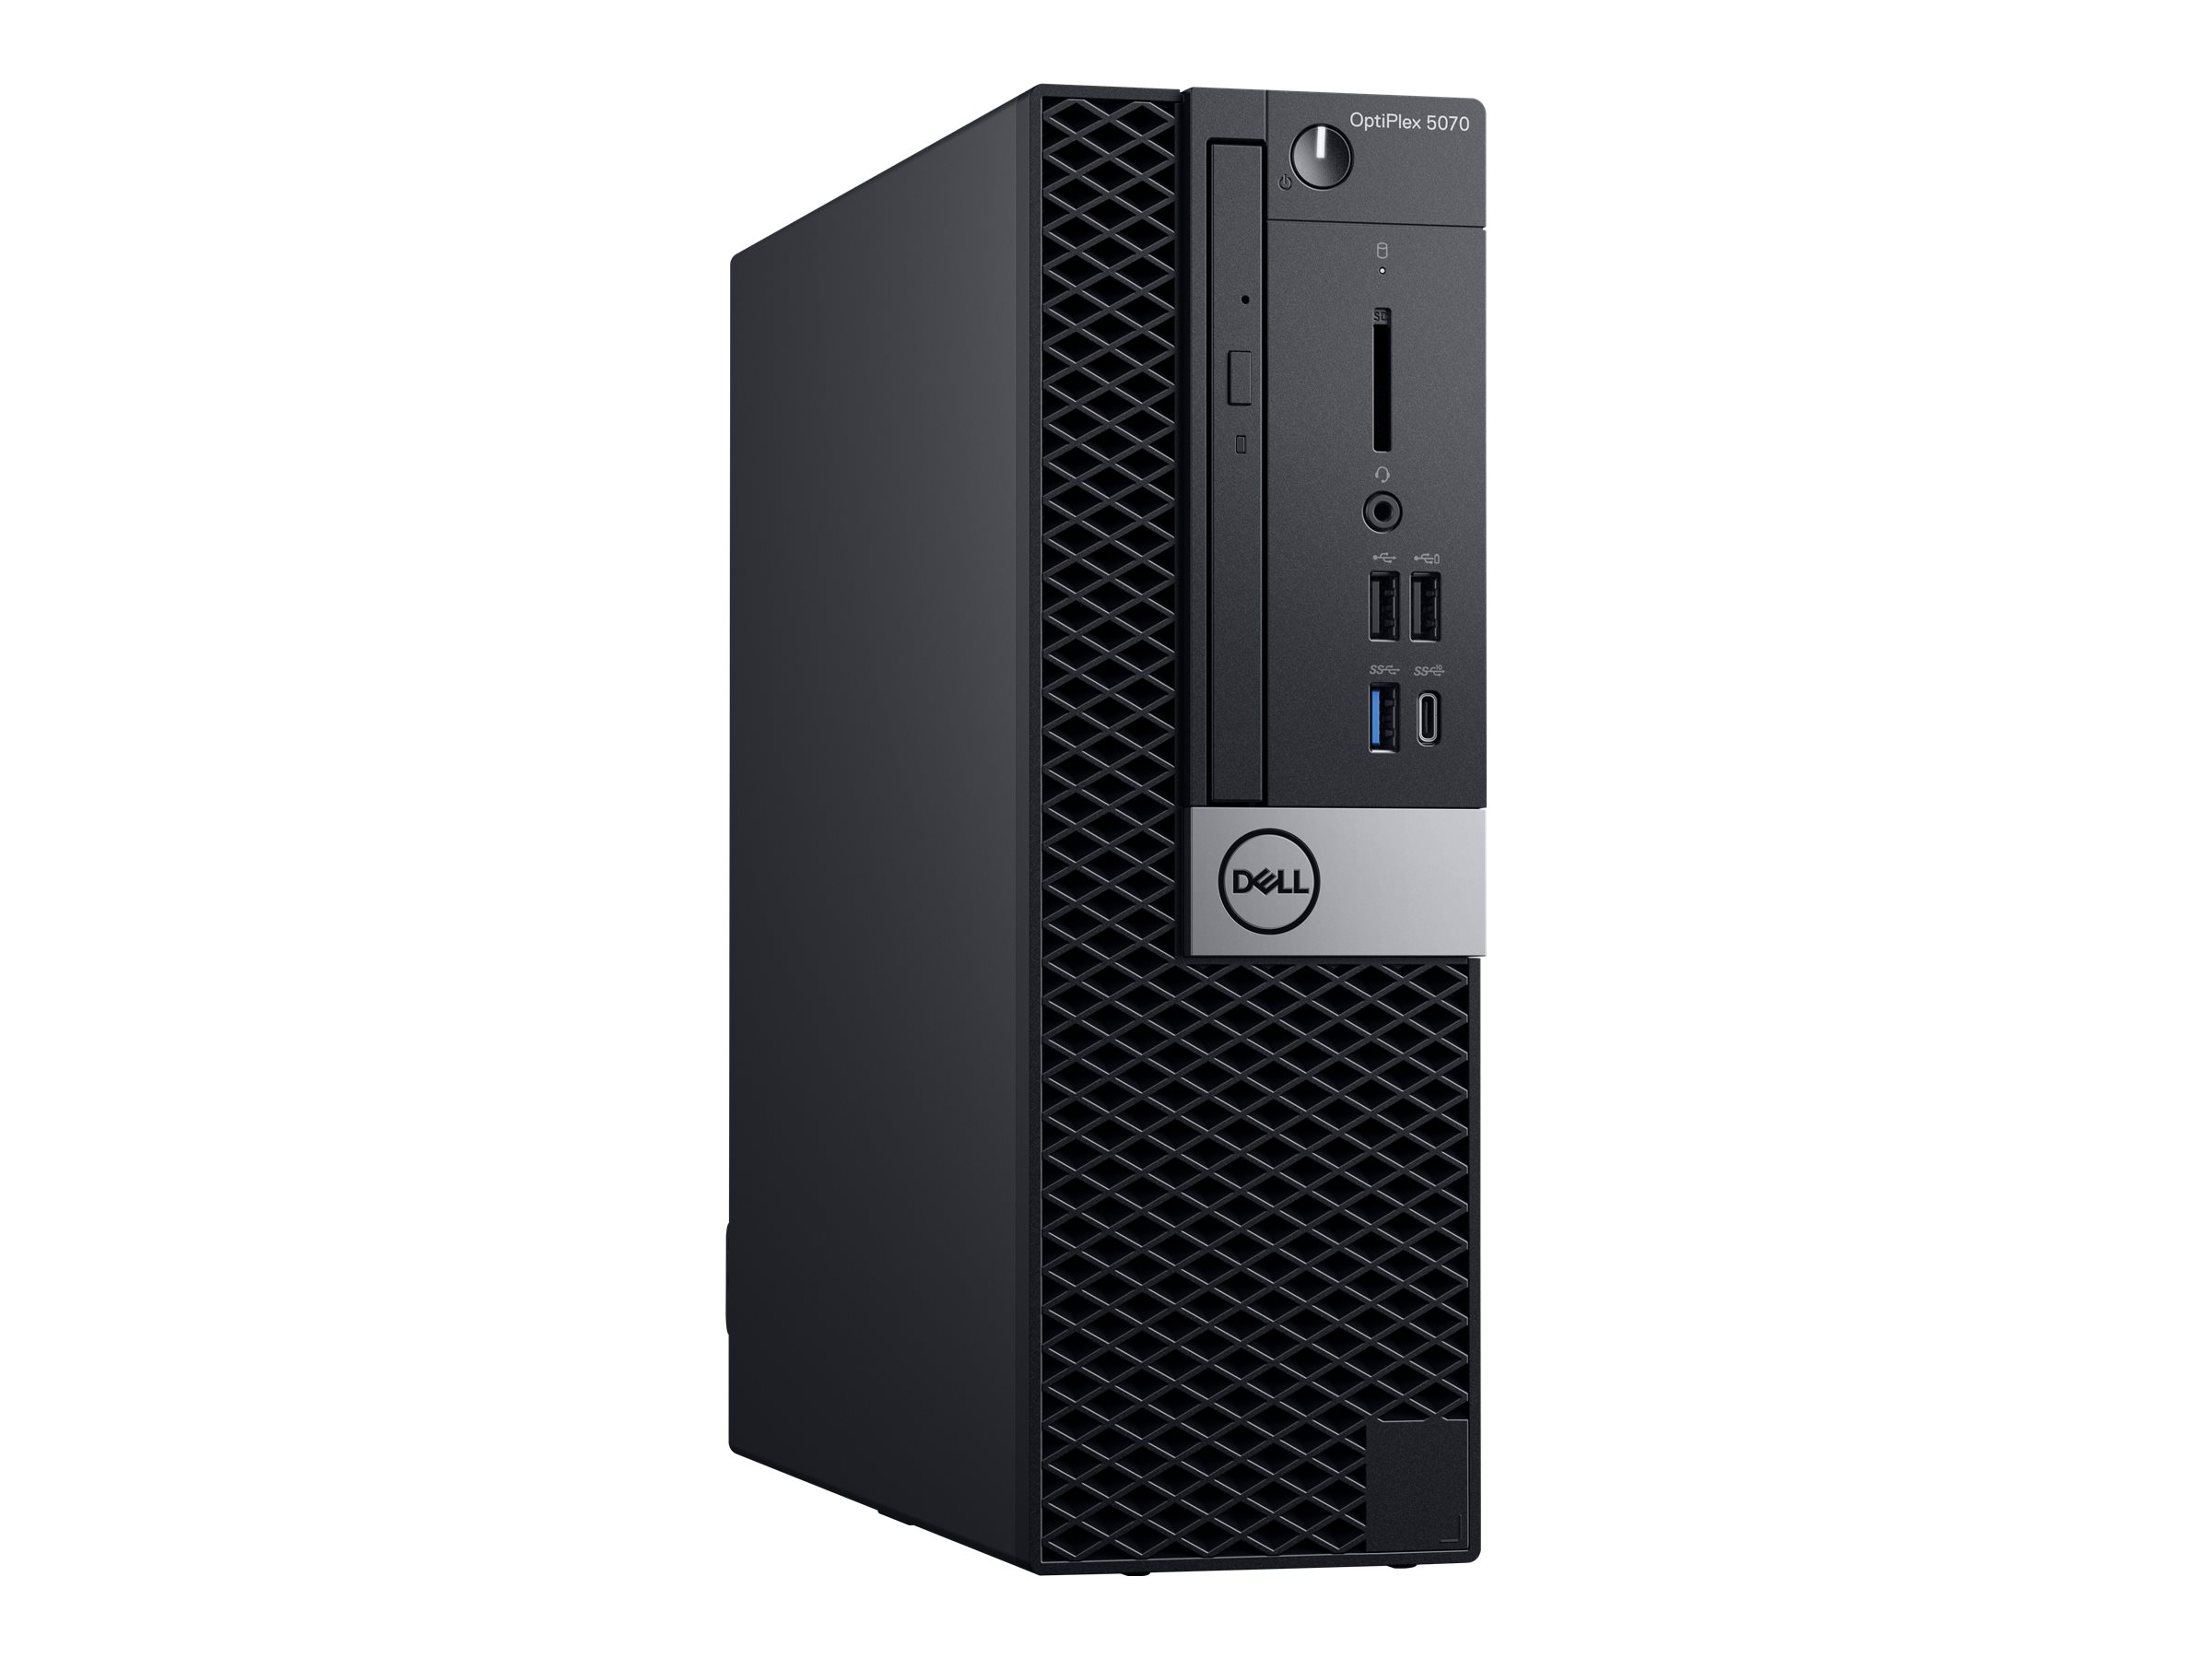 Dell OptiPlex 5070 - SFF - Core i5 9500 3 GHz - 8 GB - 500 GB - with 3-year ProSupport NBD